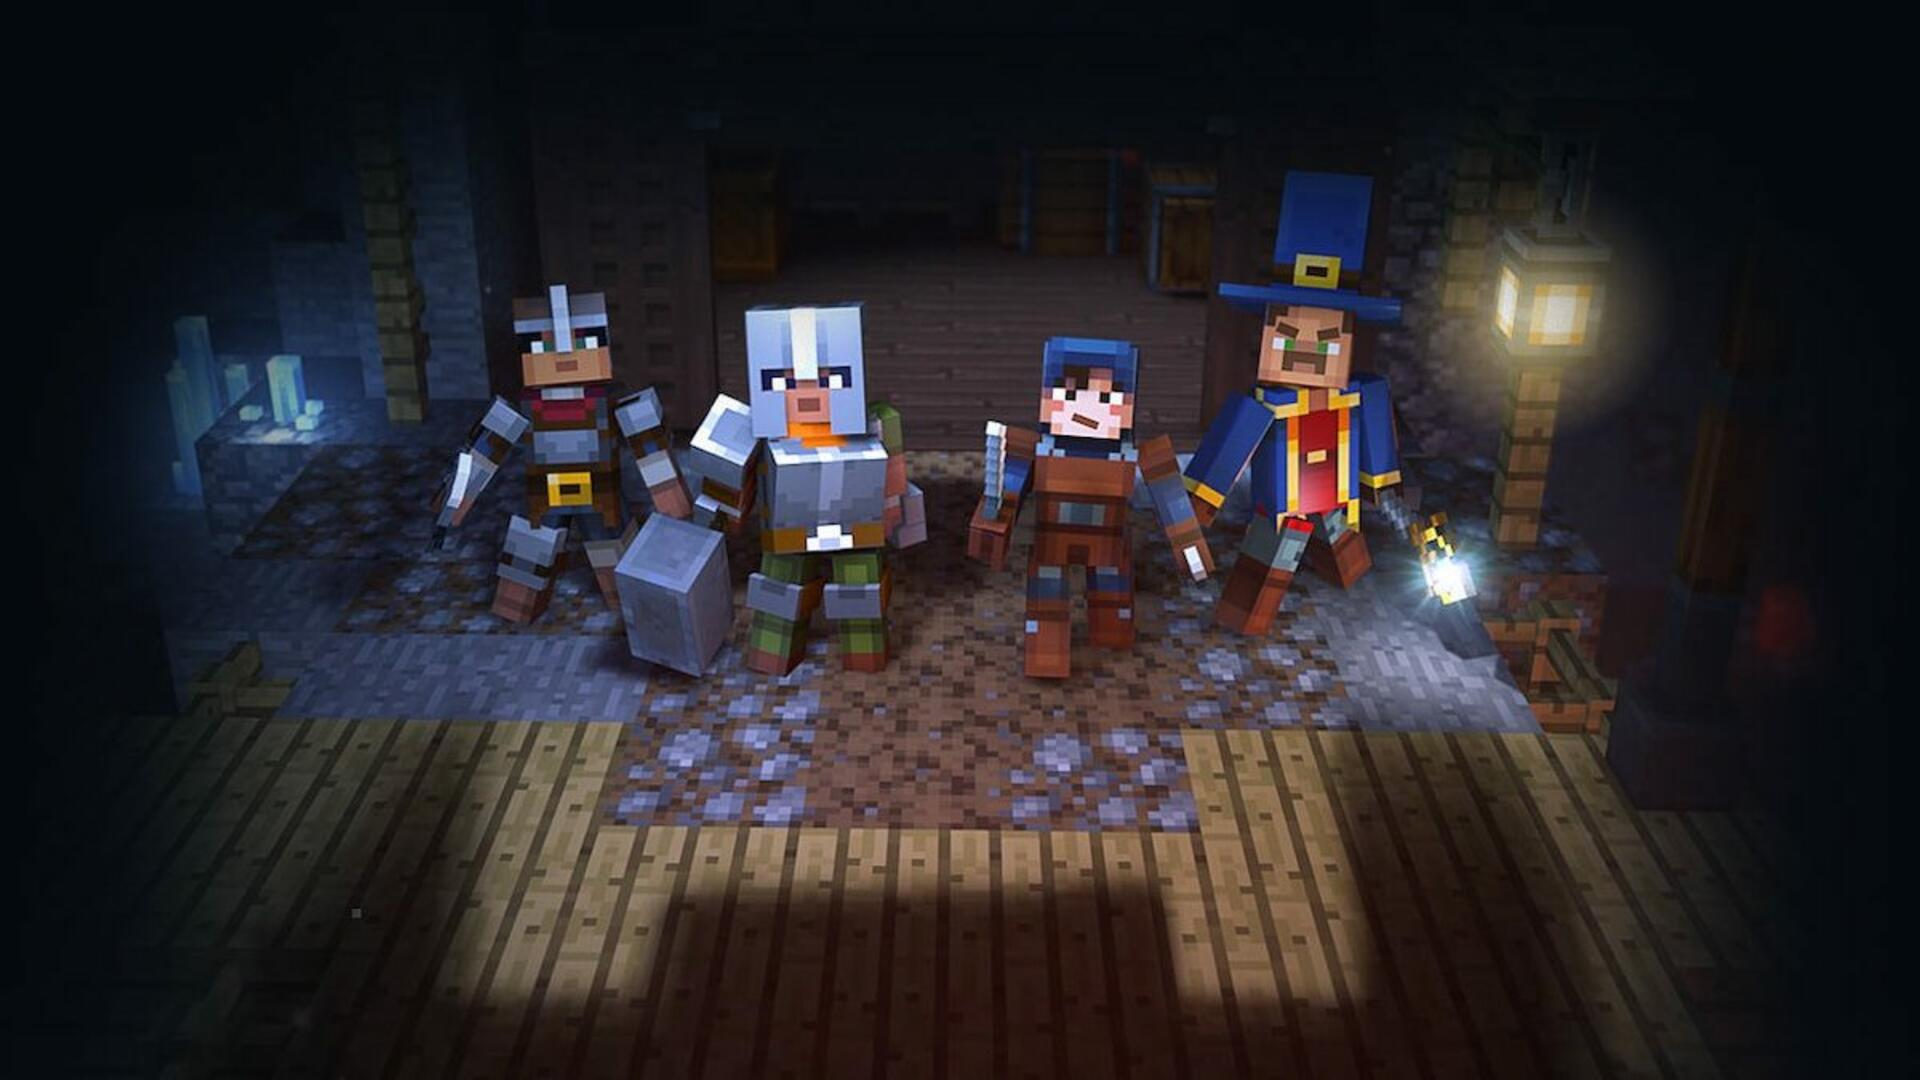 Minecraft Black Friday Deals - Games, Toys, Playsets, and More